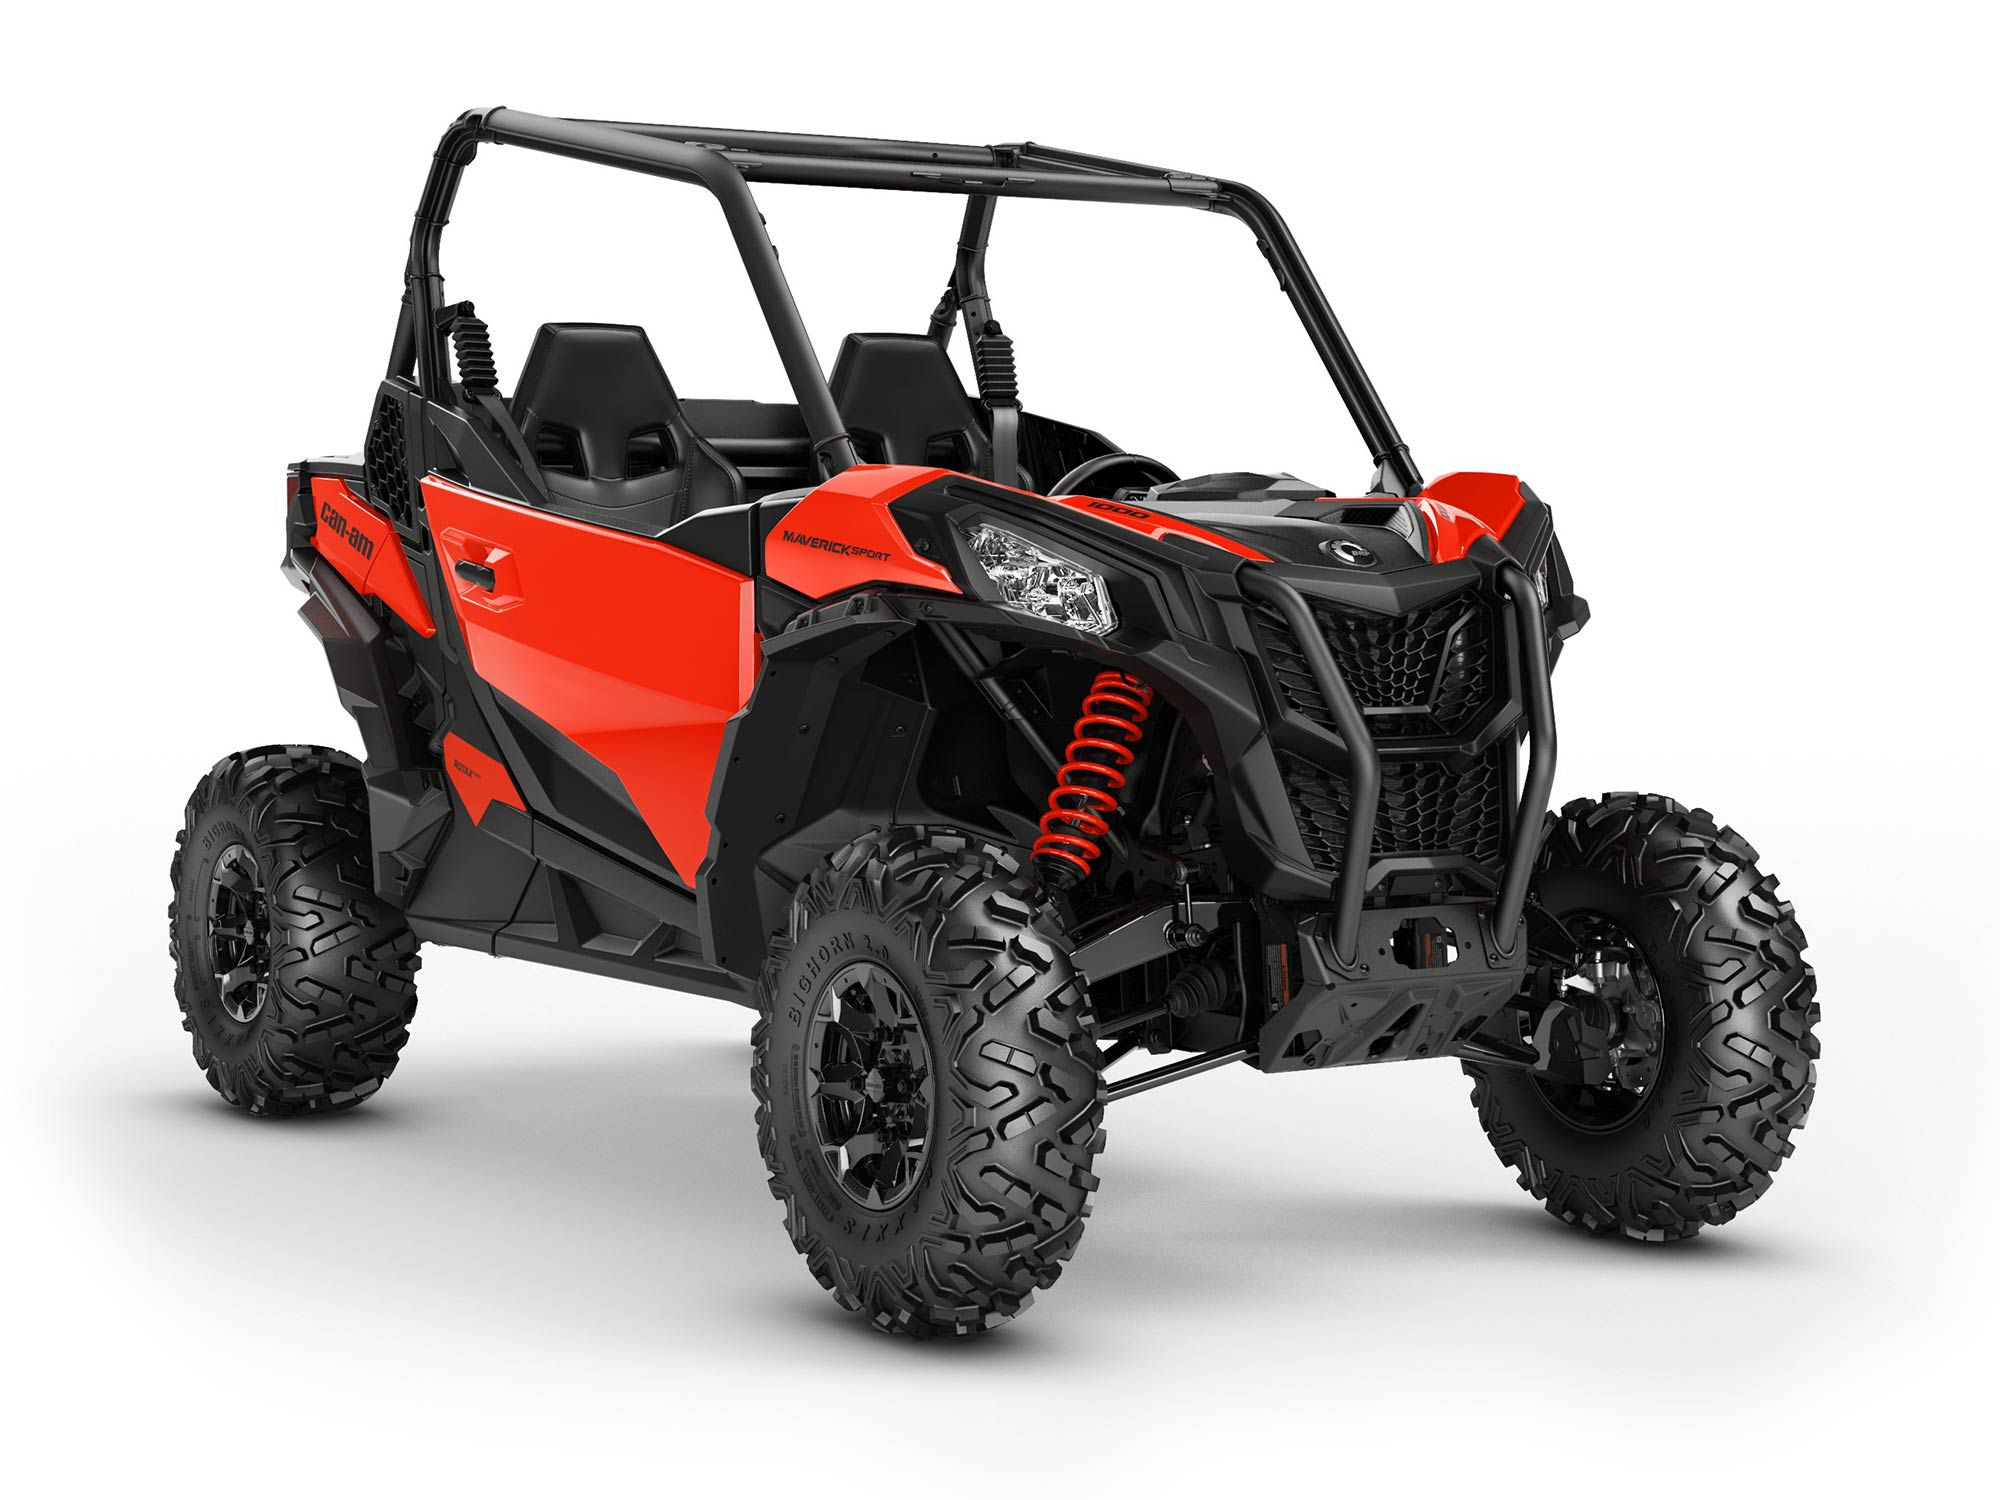 The base-model 2022 Maverick Sport comes in any color a buyer could want, as long as it's red.